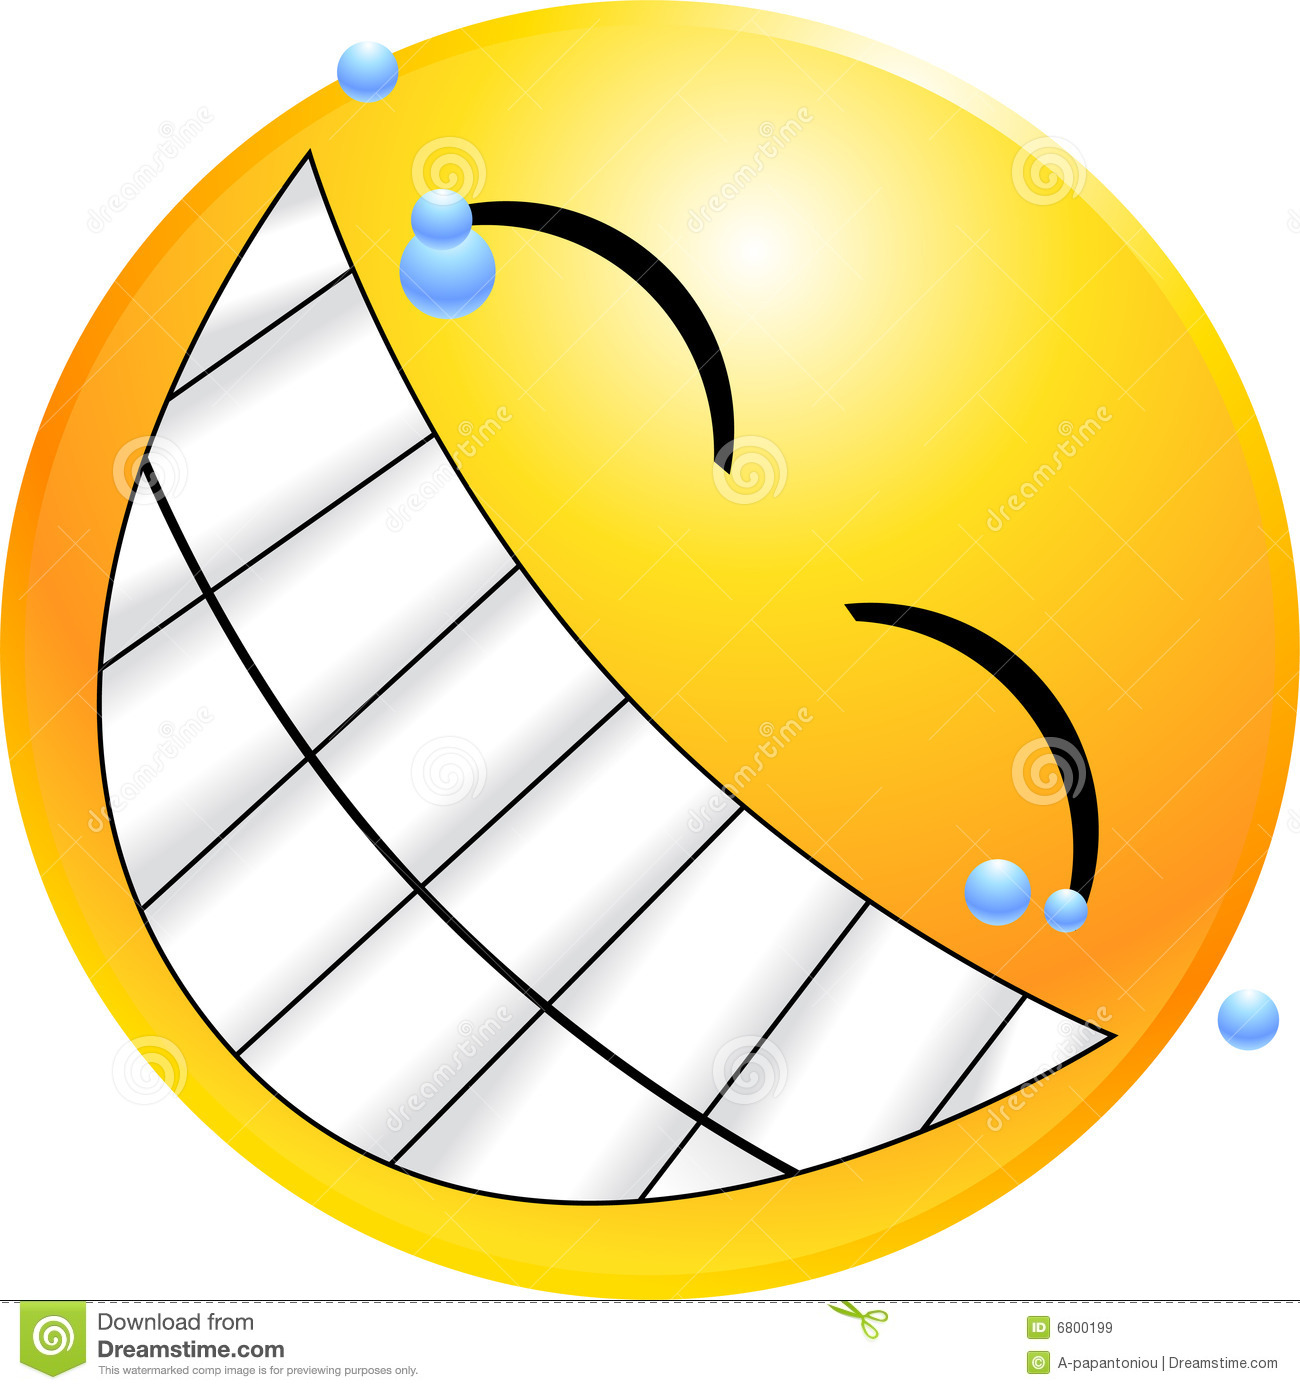 Smiley Face Animated Clip Art